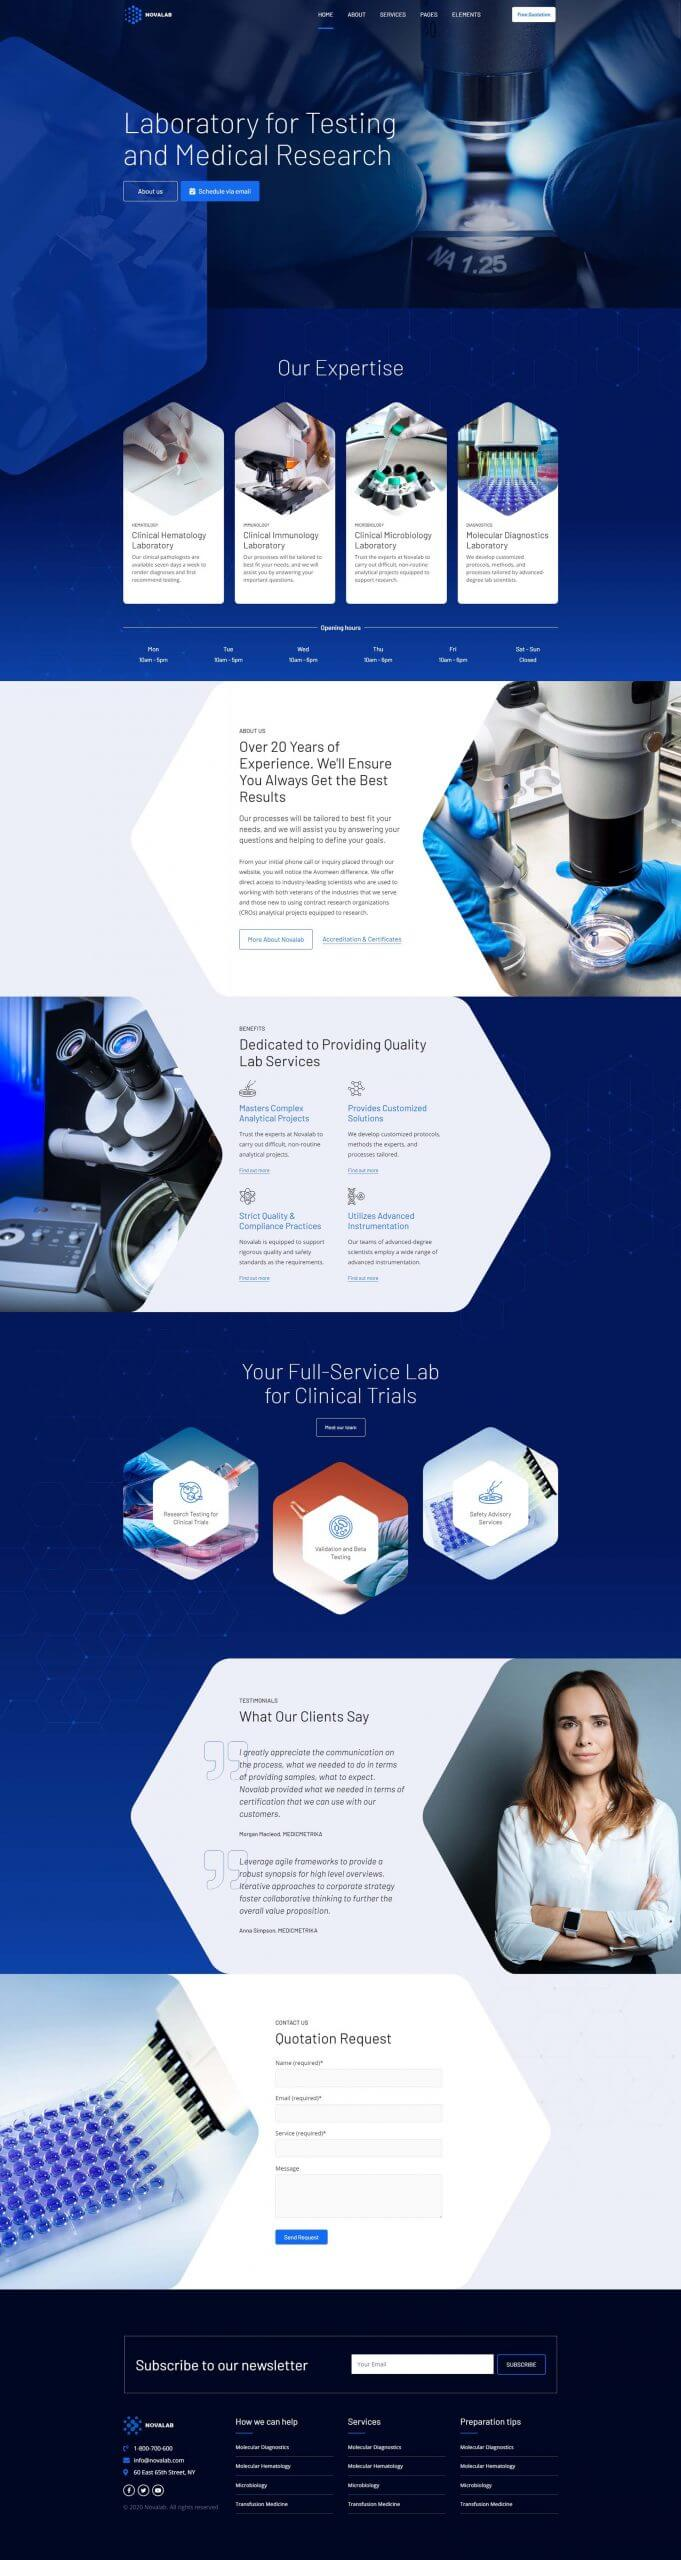 https://novalab.bold-themes.com/lab-s/wp-content/uploads/sites/9/2020/06/Home-scaled-1.jpg